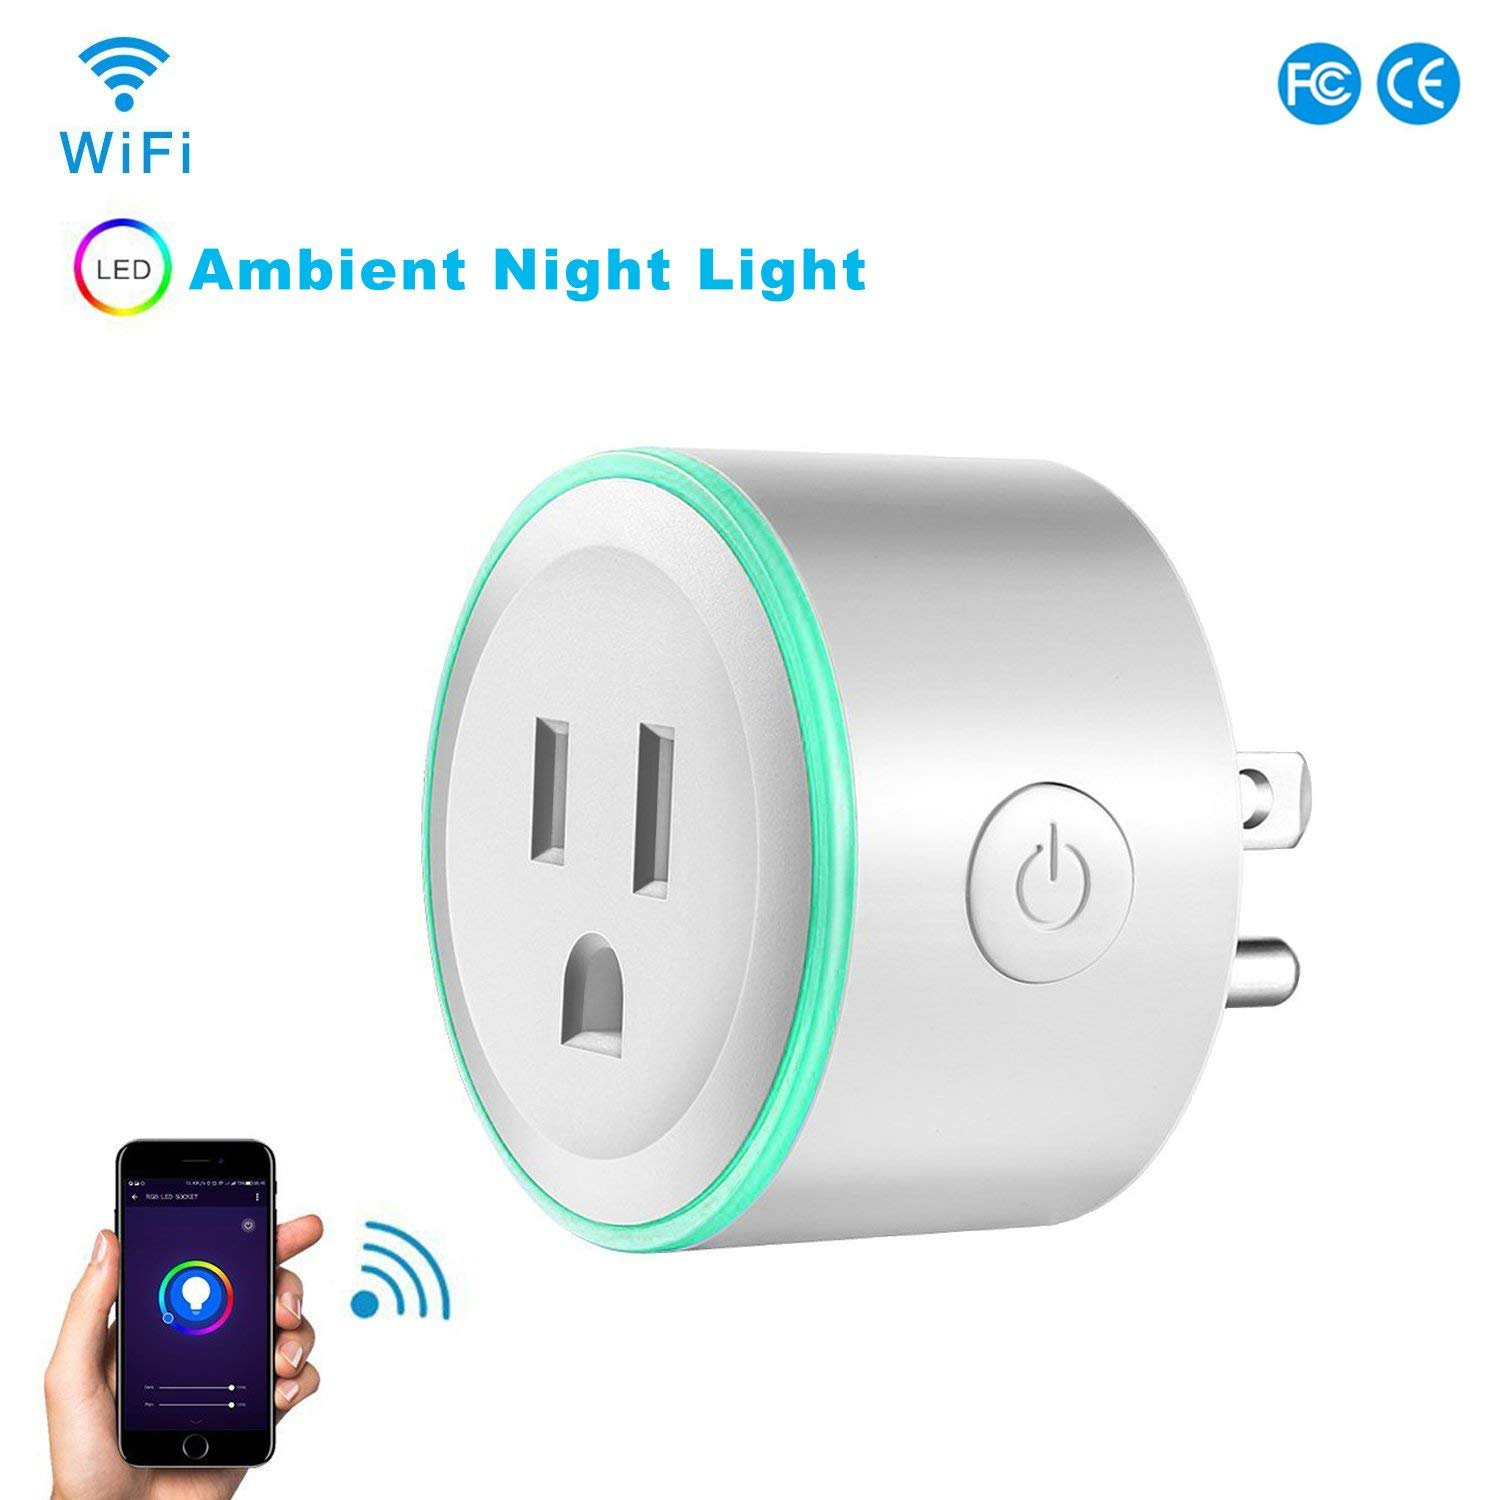 Wifi Smart Plug, Work With Alexa Google Home,with Ambient Night Light, Compatible With Voice Activated Devices Echo Dot Accessoires,Remote Mini Outlet Multi-function Socket Swtich